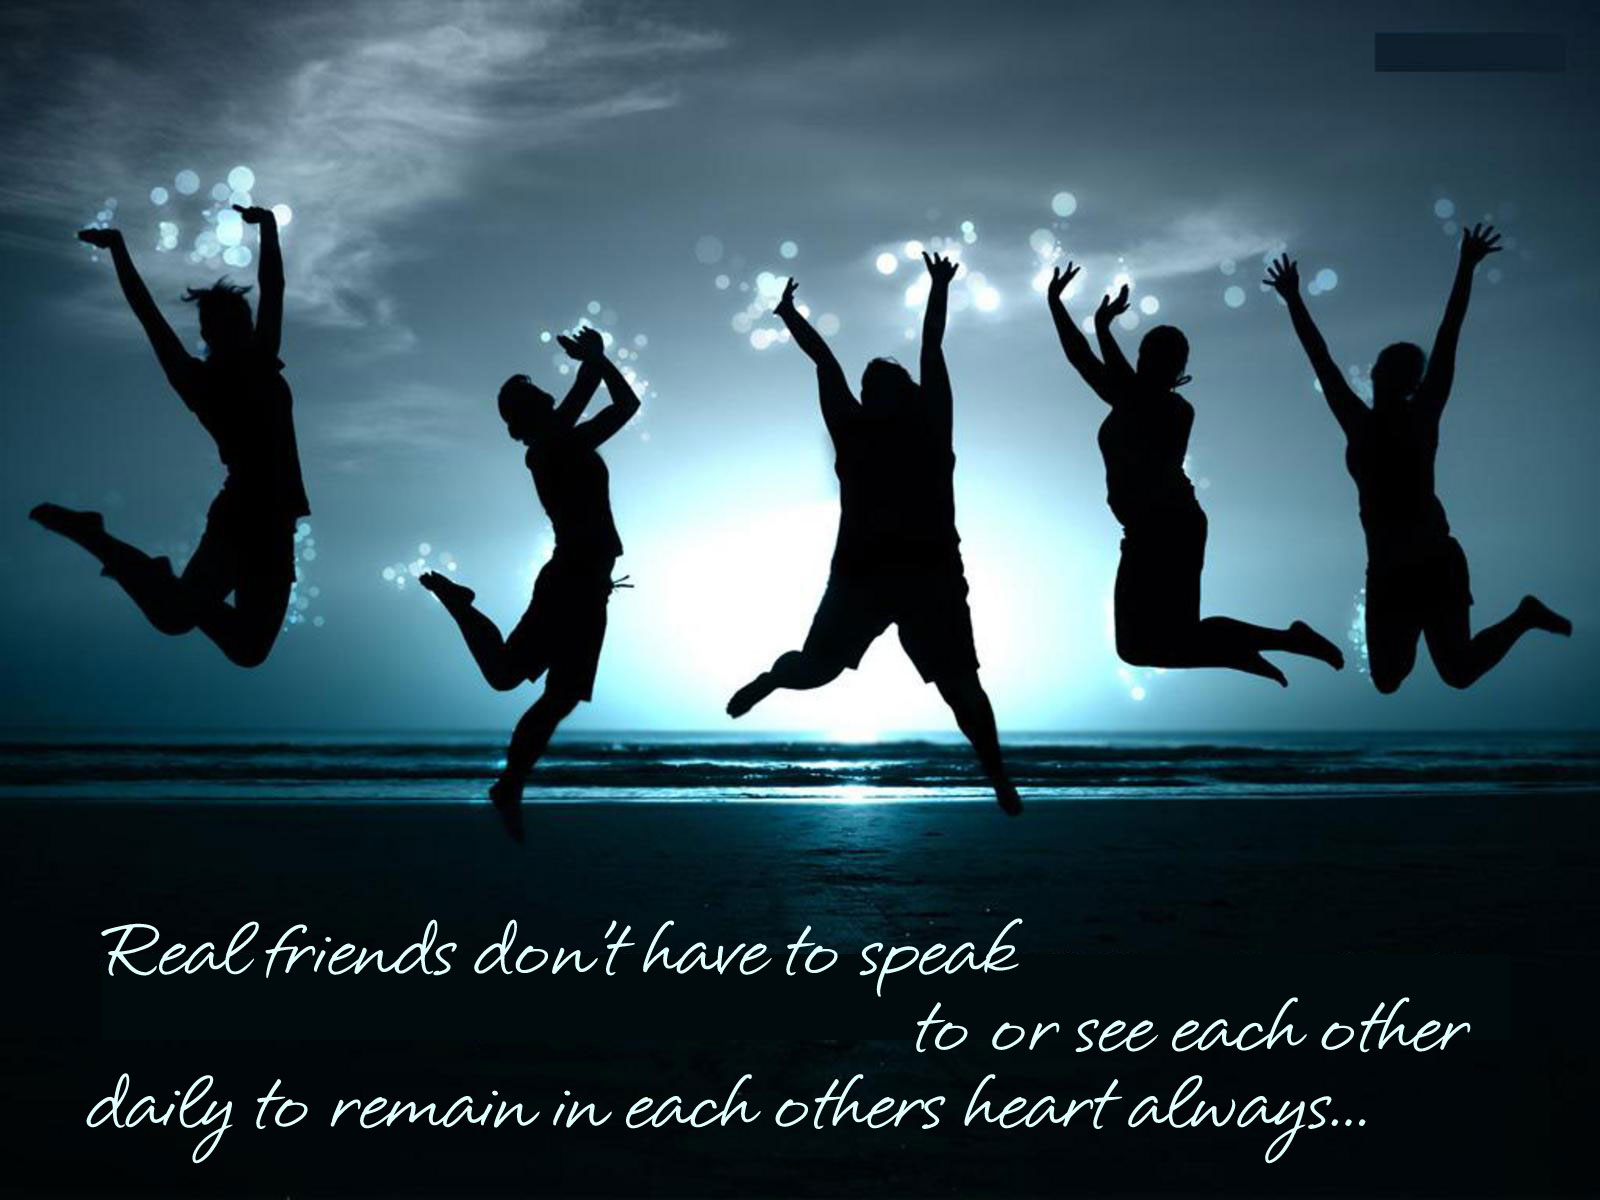 40 Cute Friendship Quotes With Images Friendship wallpapers 1600x1200